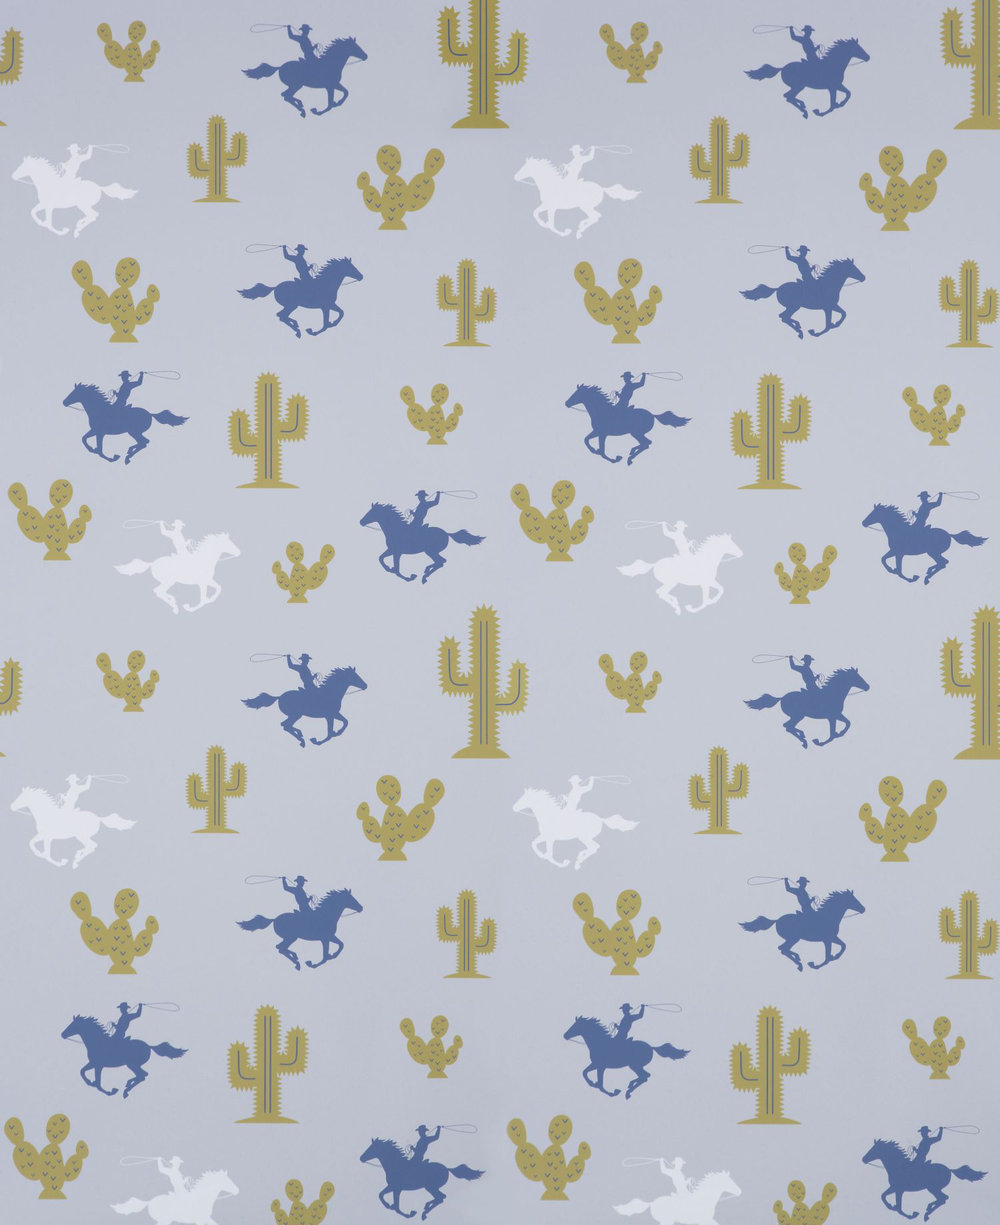 Hibou Home Cactus Cowboy Blue / Green / Pale Grey Wallpaper - Product code: HH00301